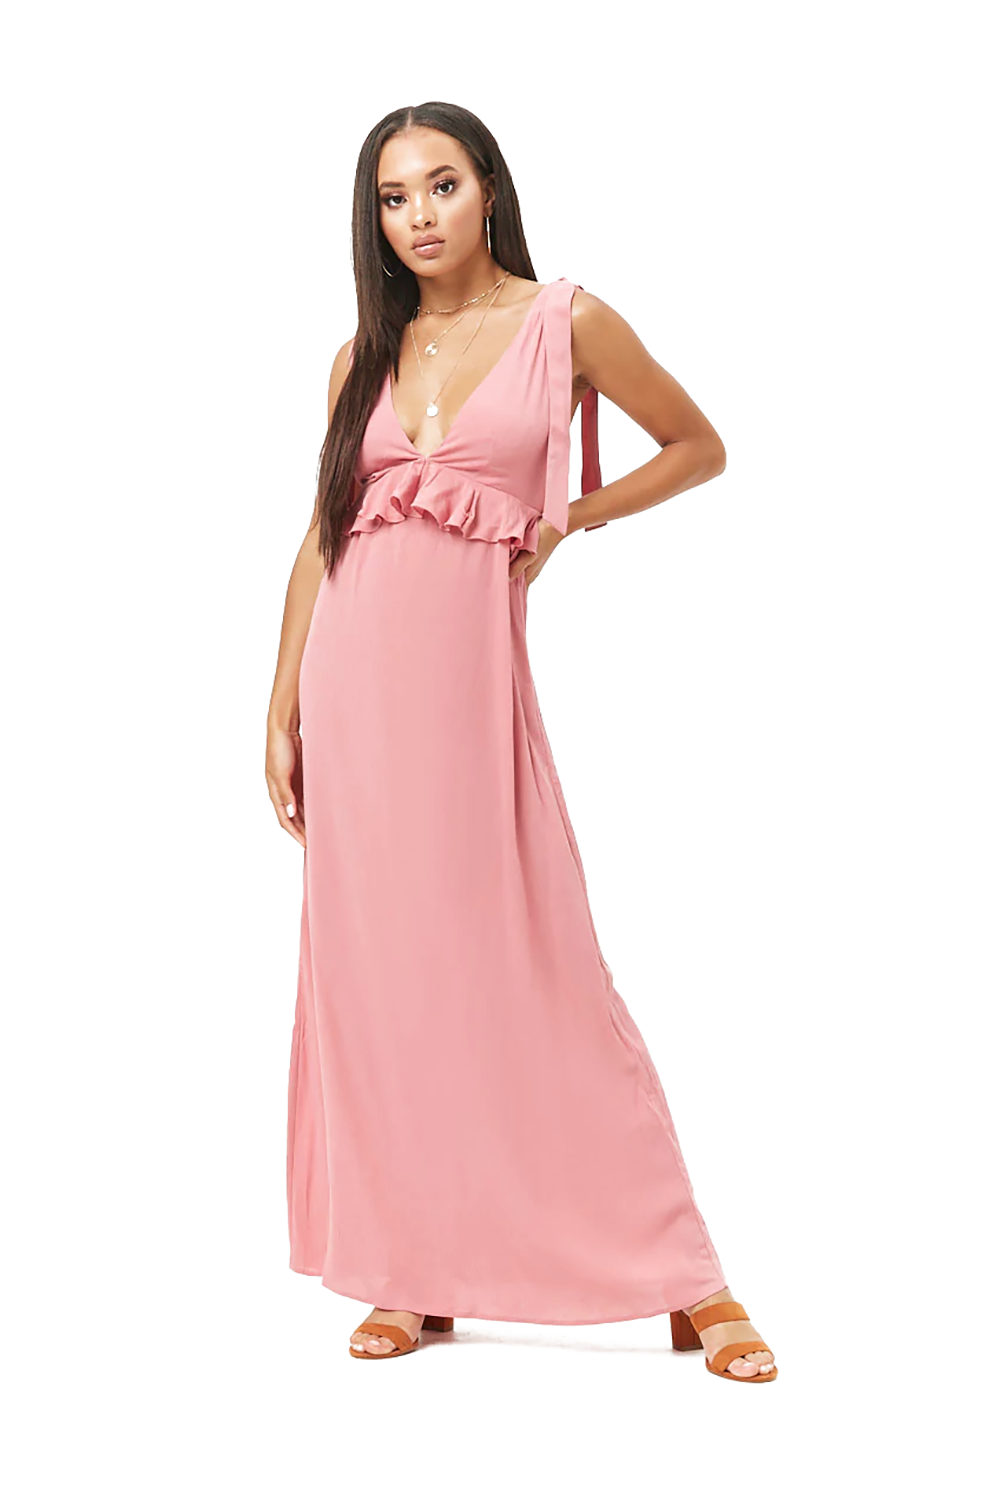 Summer Wedding Guest Dresses Where To Buy Cute Affordable Summer